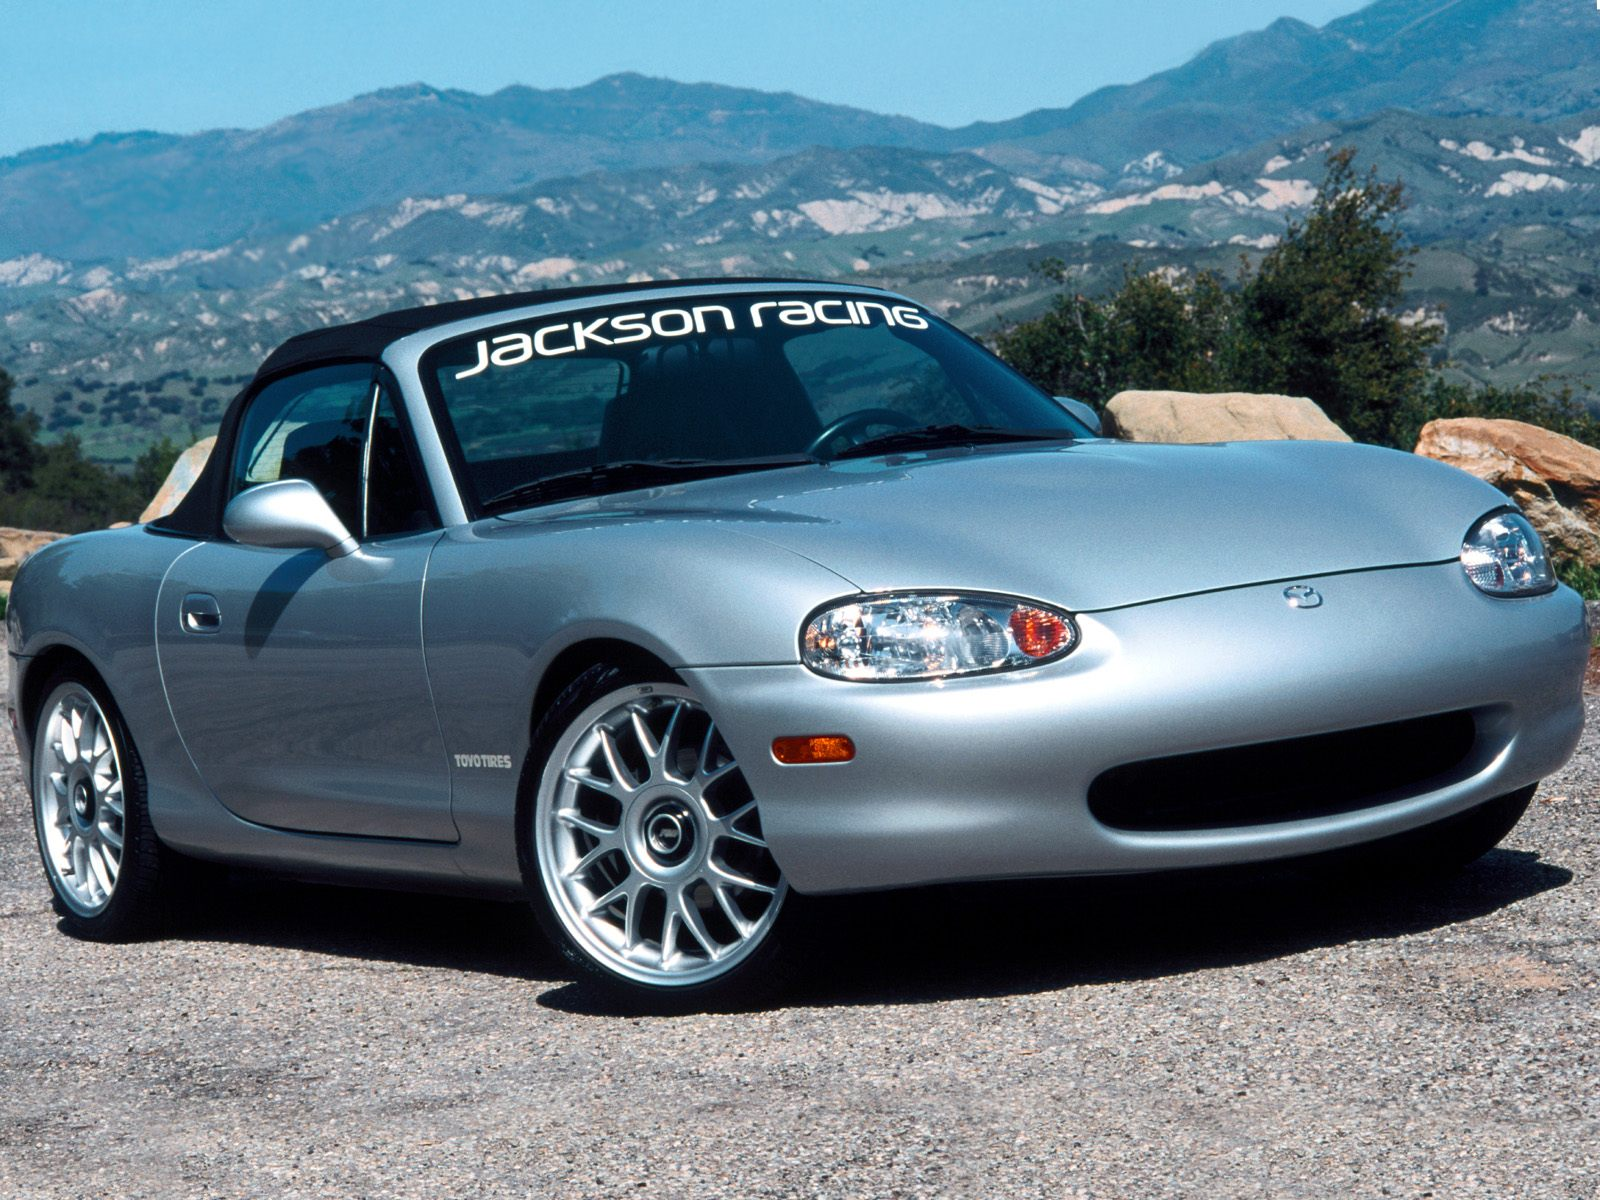 Repair Manual Mazda Miata 1997 Wiring Diagram~When trying to locate a  component in a wiring diagram and you don t know the specific system where  it is ...